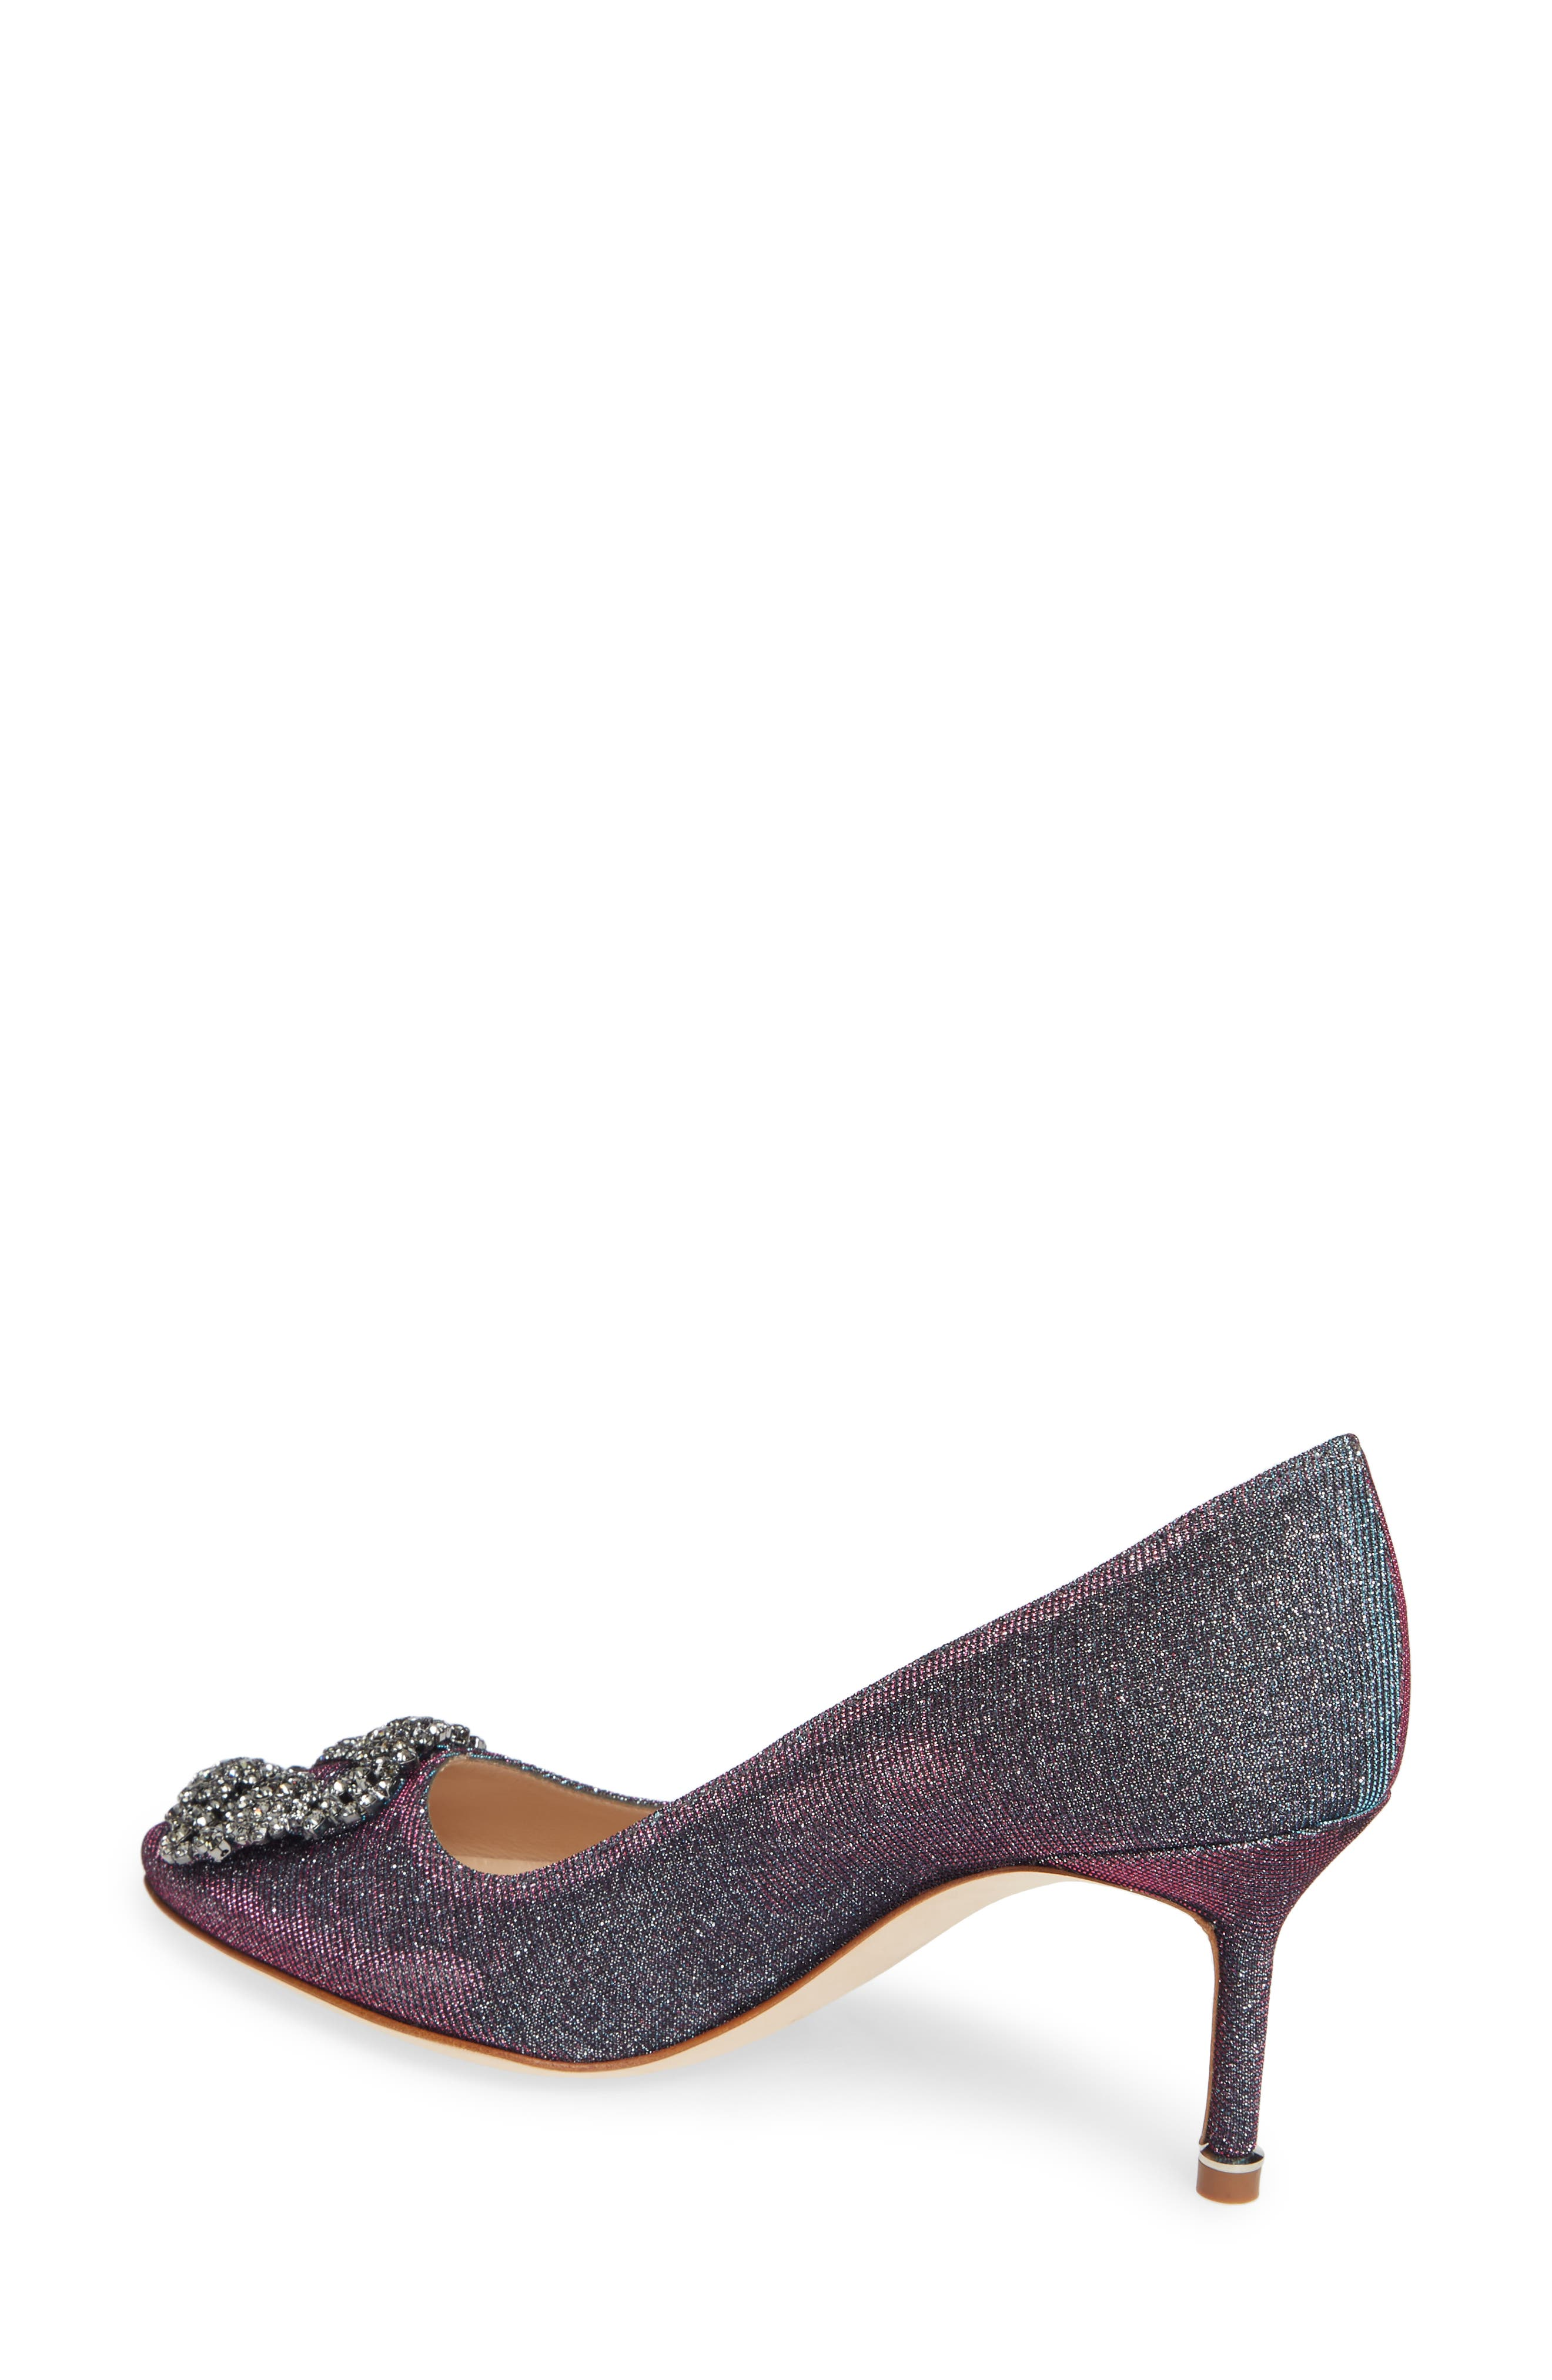 MANOLO BLAHNIK, Hangisi Pump, Alternate thumbnail 2, color, MIDNIGHT BLUE